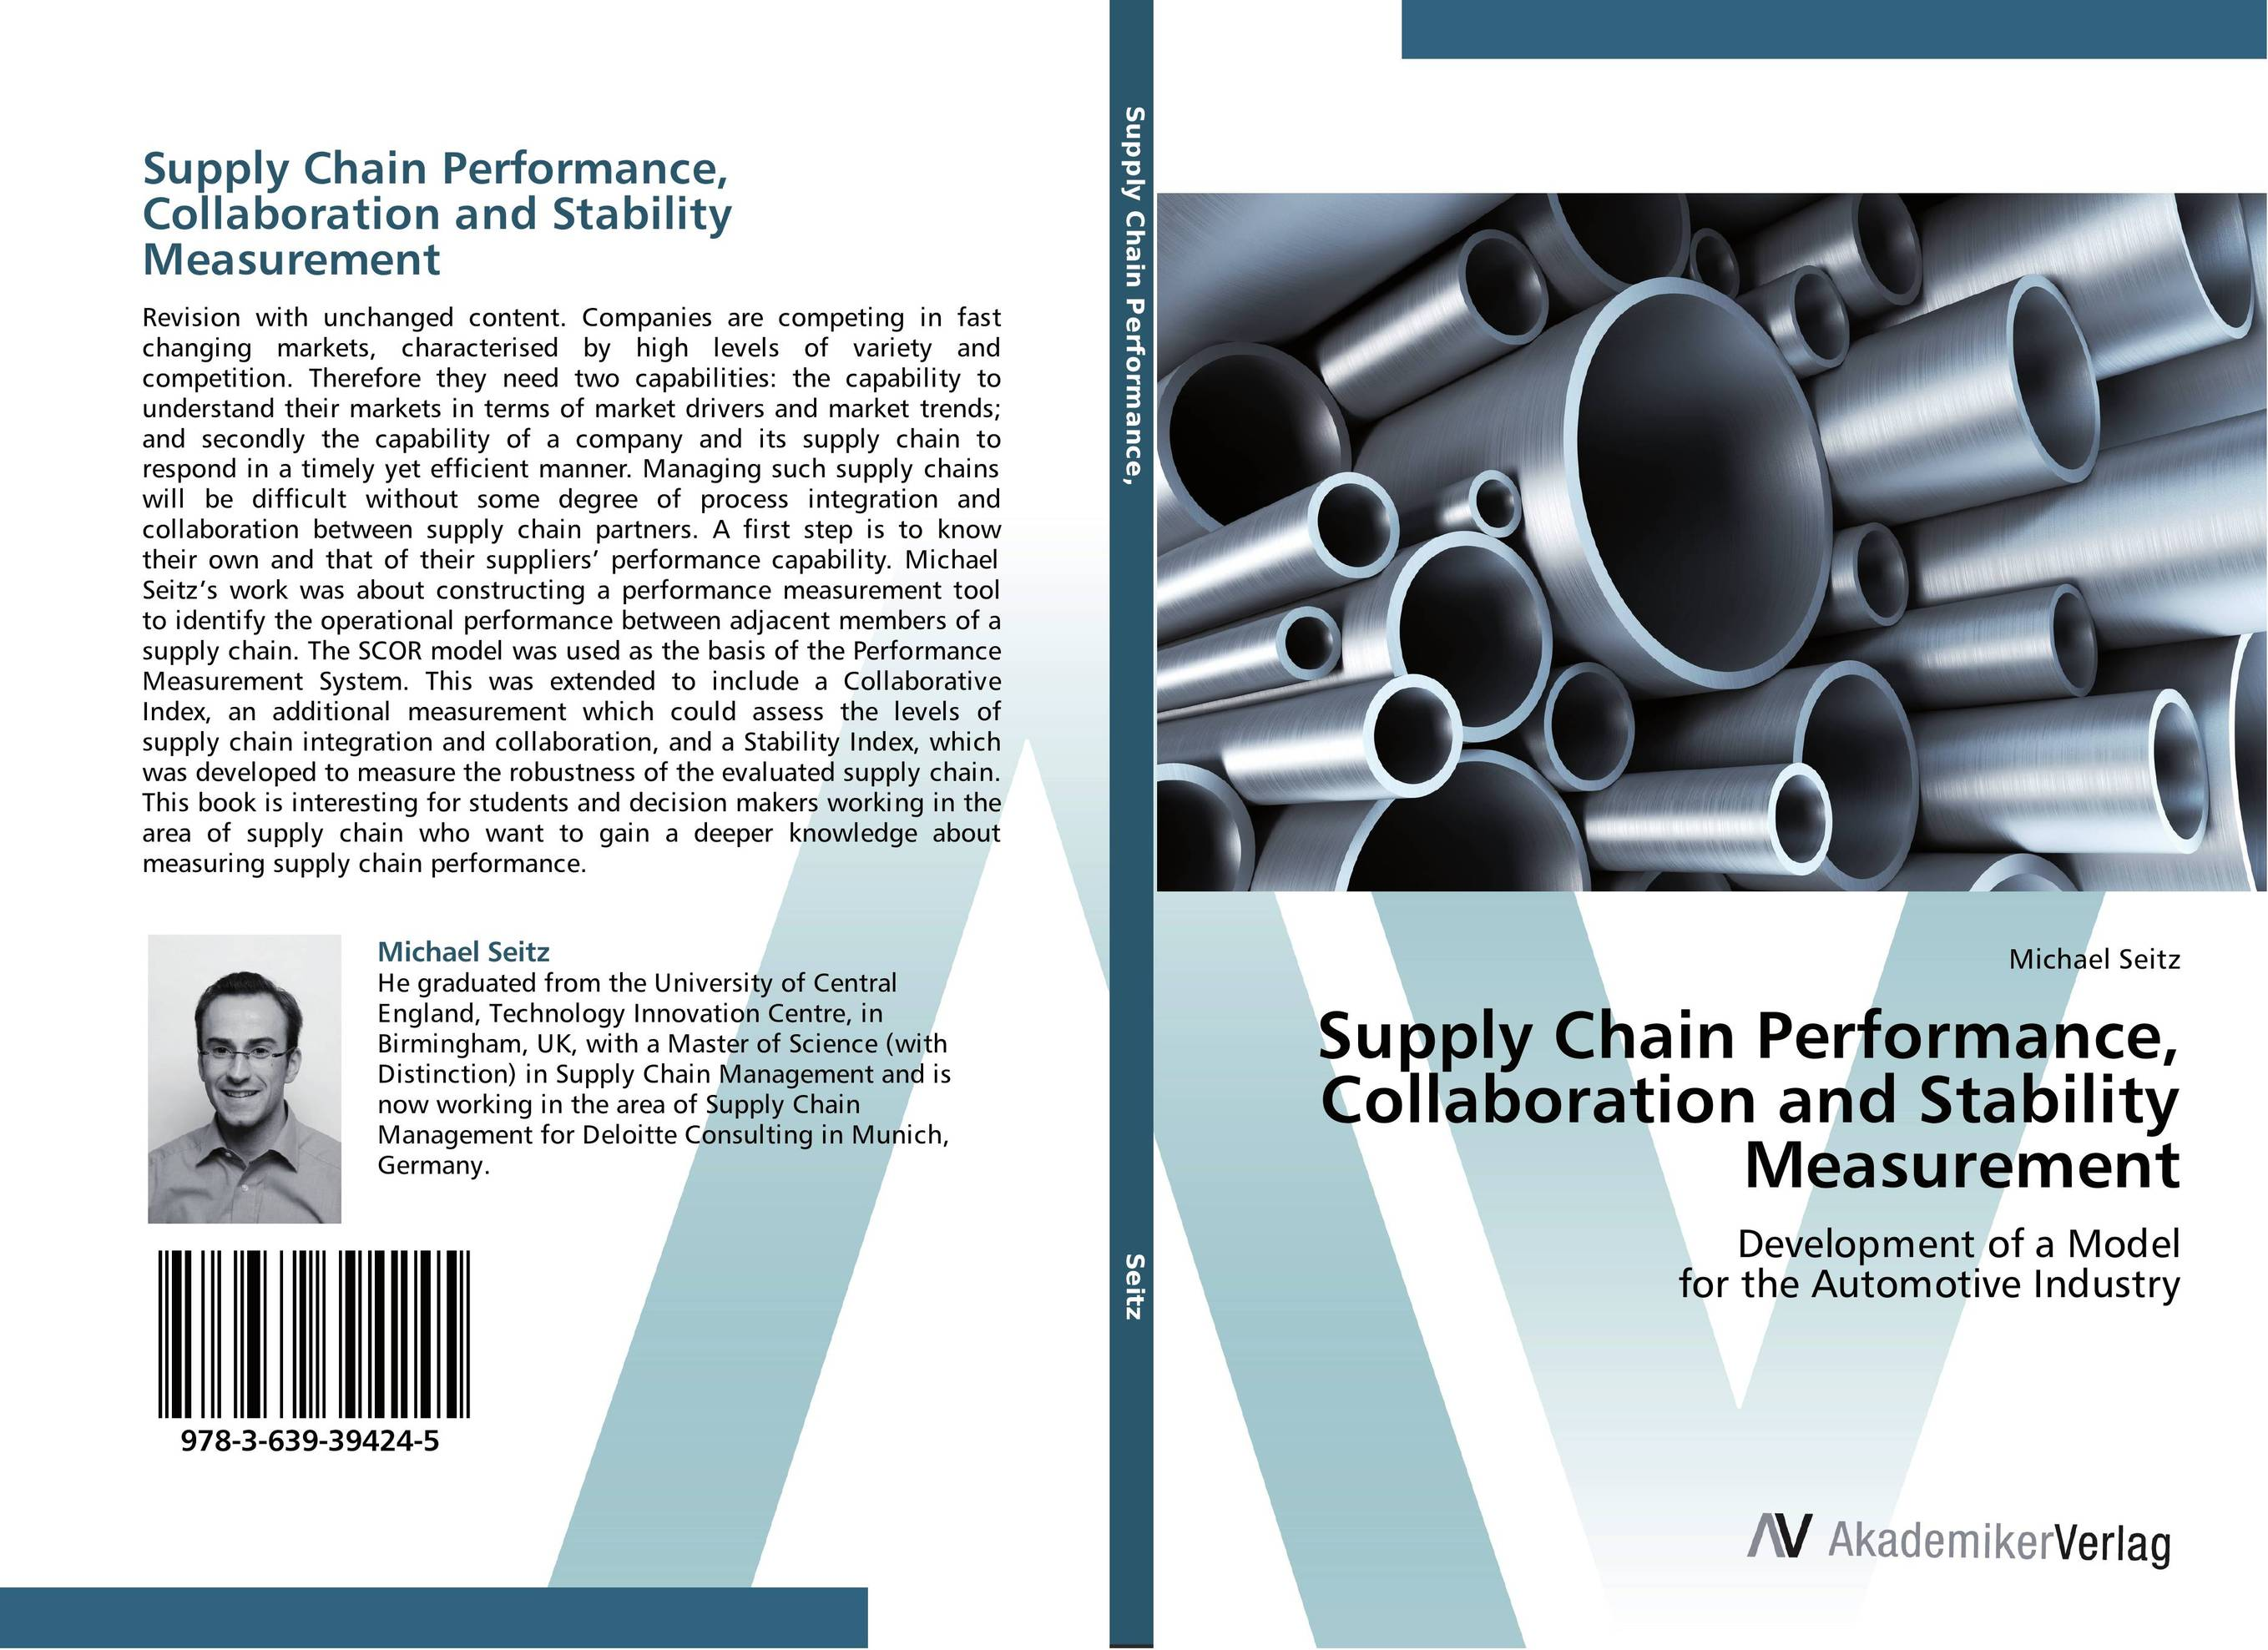 Supply Chain Performance, Collaboration and Stability Measurement robert davis a demand driven inventory optimization and replenishment creating a more efficient supply chain